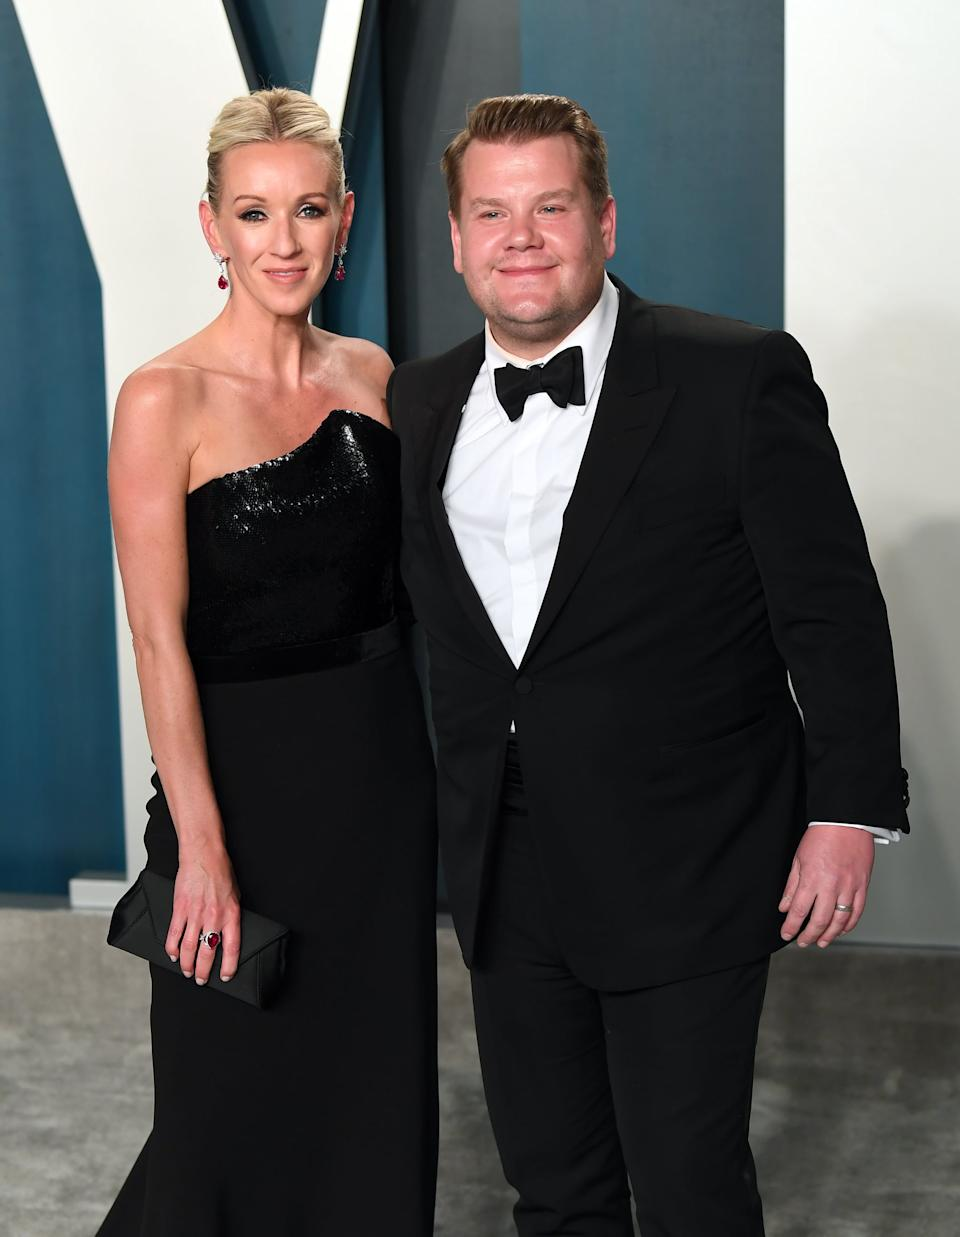 BEVERLY HILLS, CALIFORNIA - FEBRUARY 09: Julia Carey and James Corden attend the 2020 Vanity Fair Oscar Party hosted by Radhika Jones at Wallis Annenberg Center for the Performing Arts on February 09, 2020 in Beverly Hills, California. (Photo by Karwai Tang/Getty Images)